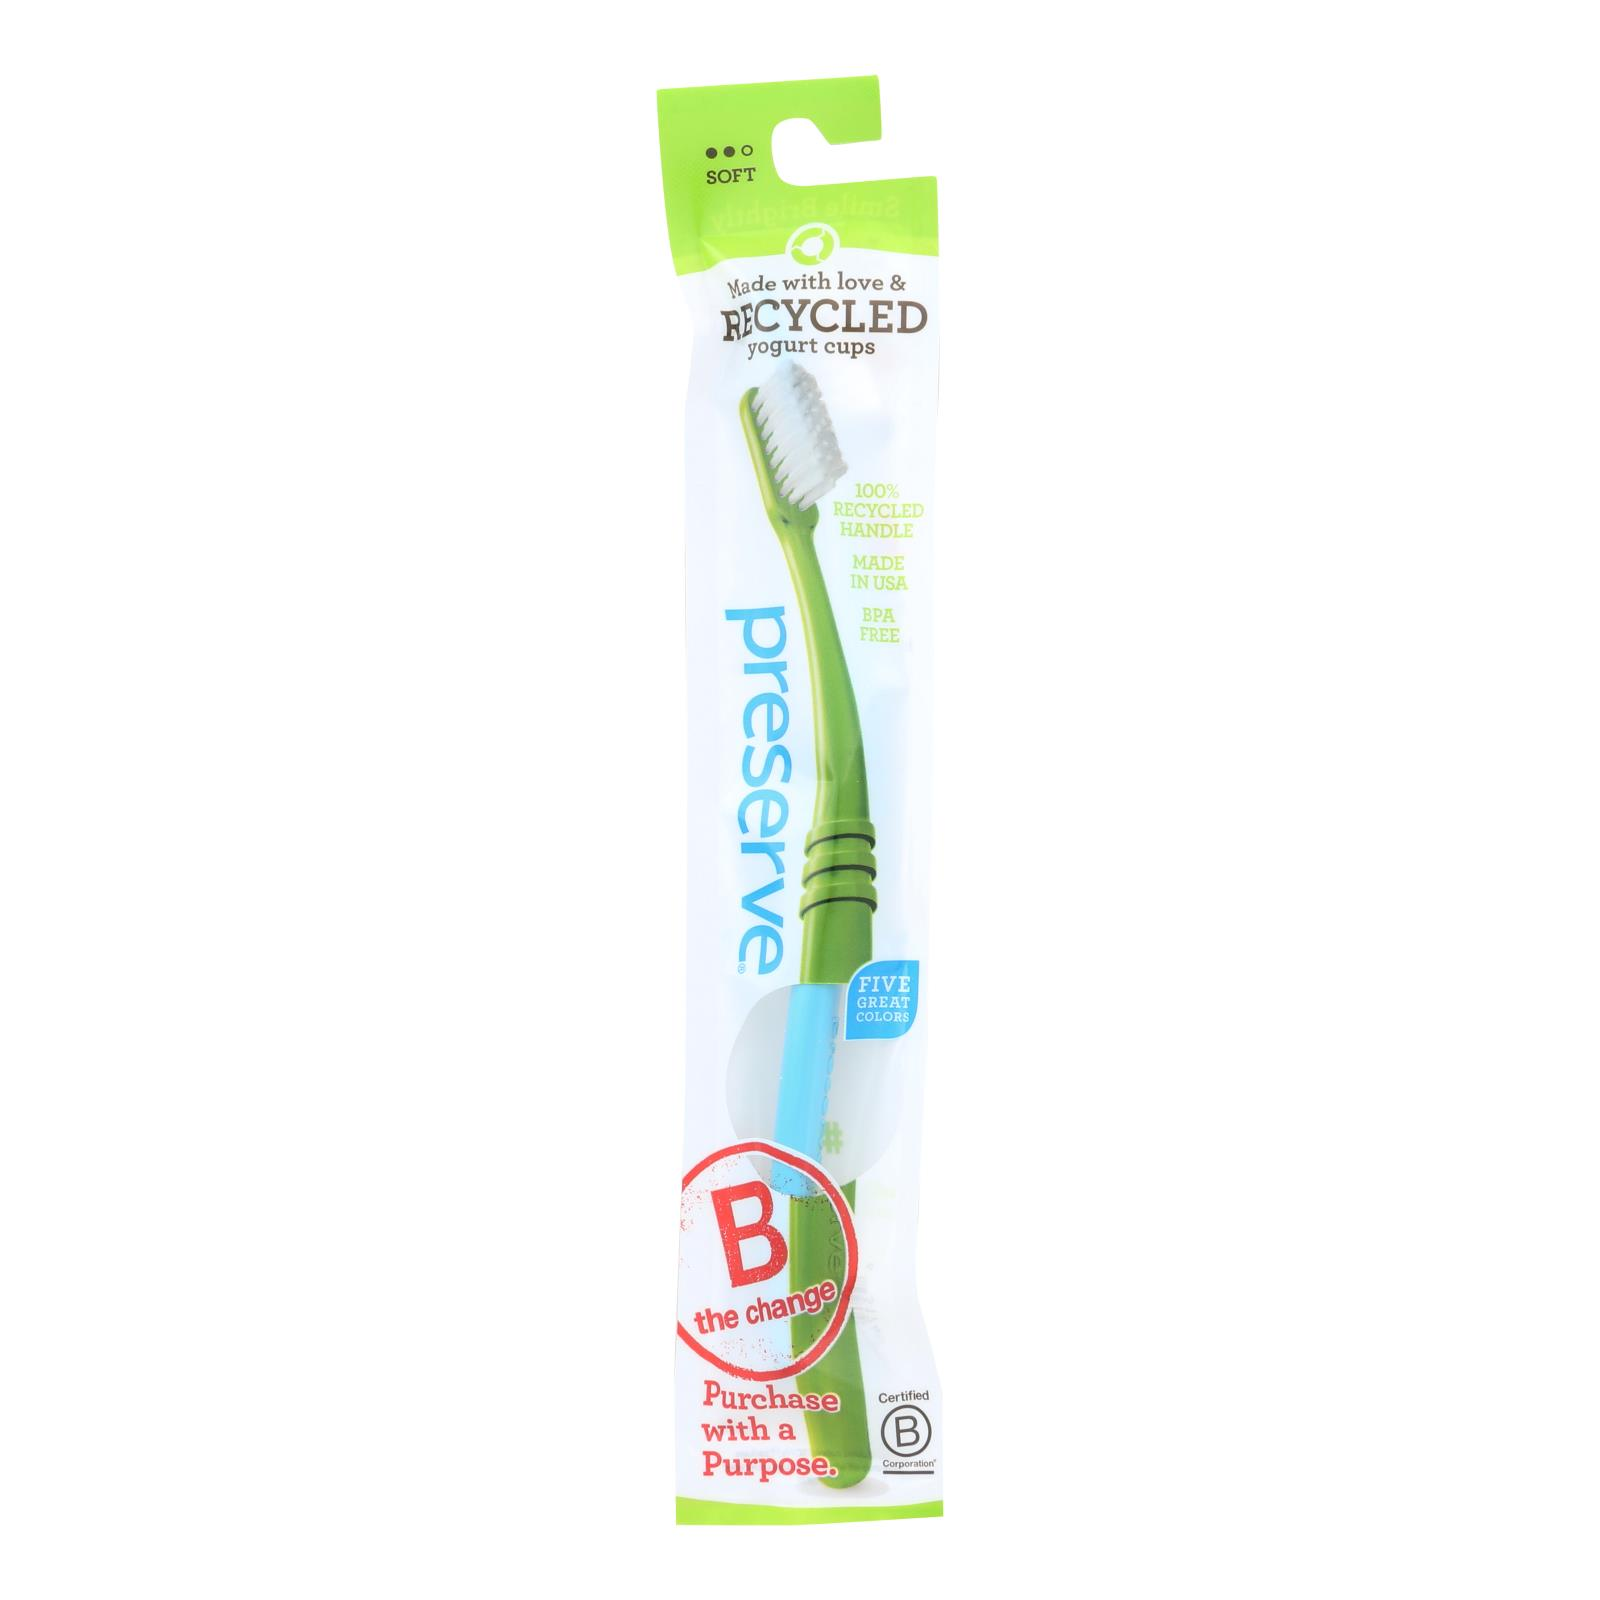 Preserve Adult Toothbrush in a Lightweight Pouch Soft - 6 Pack - Assorted Colors